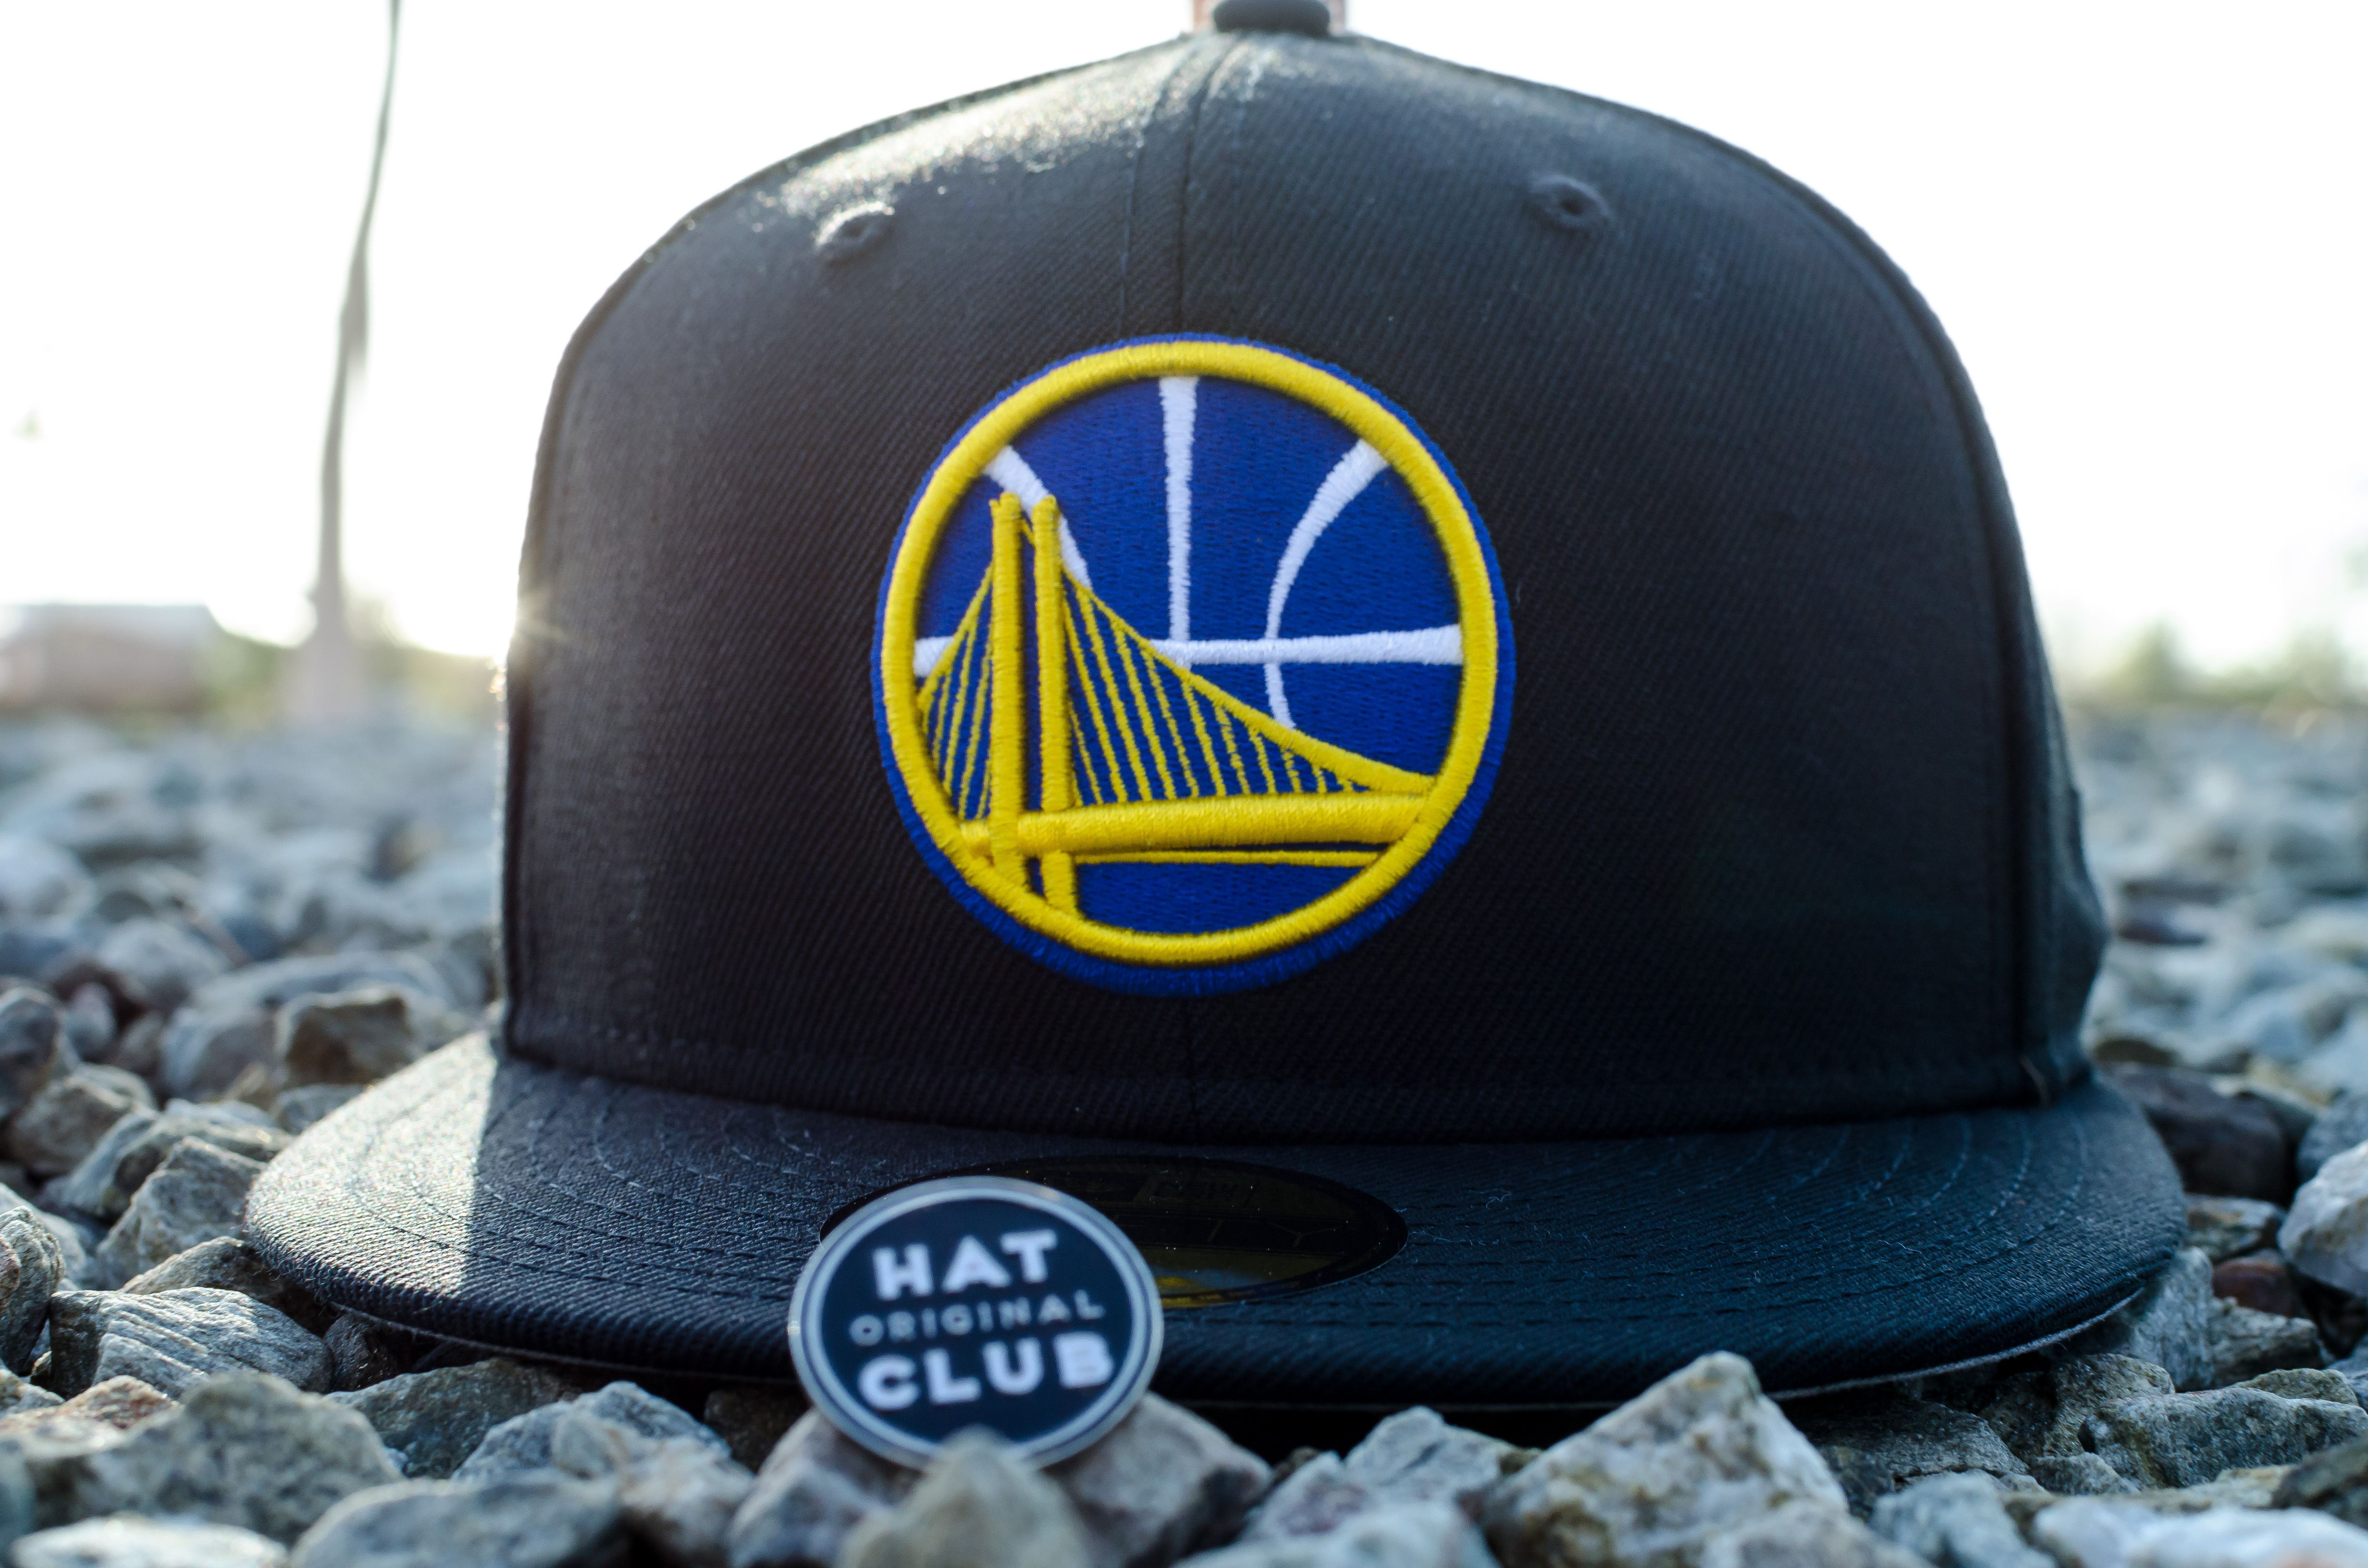 cda1896c9355b New Era Golden State Warriors Fitted Hat. Hat Club Original.